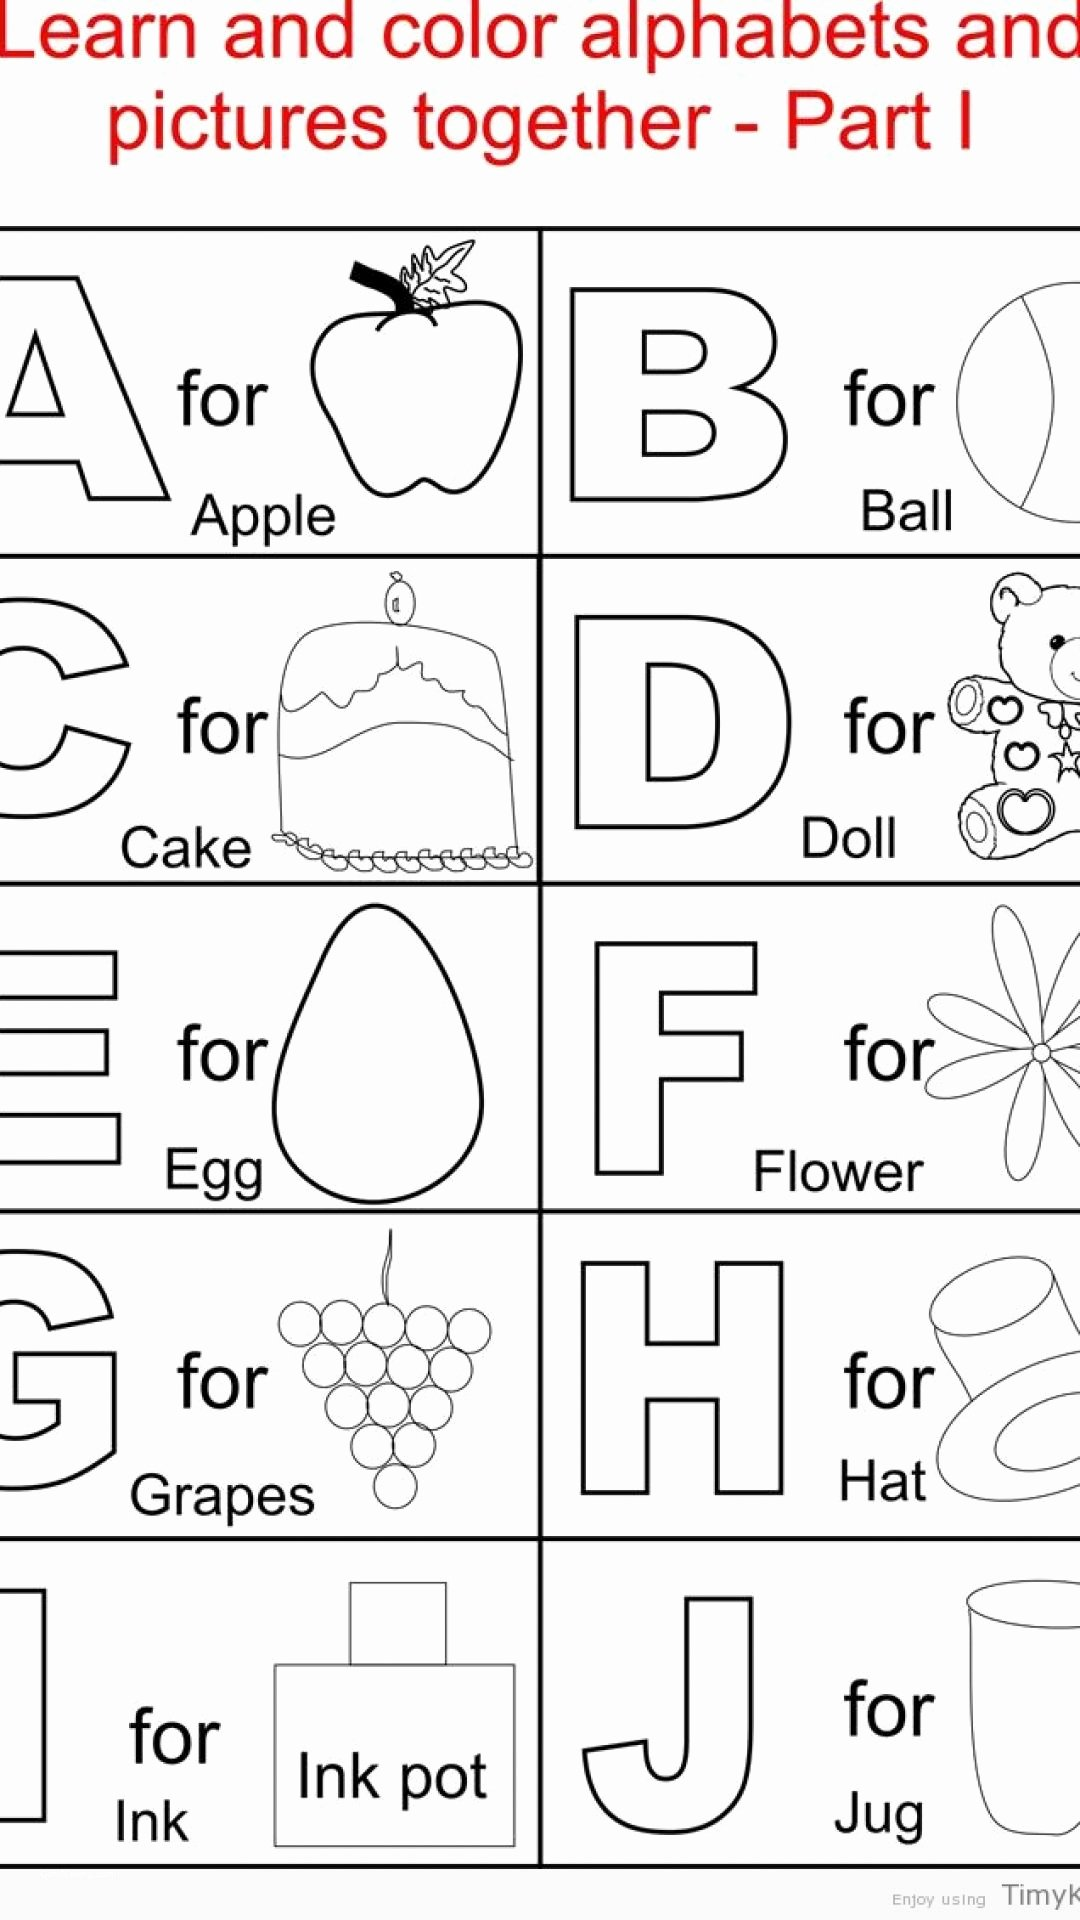 Letter A Coloring Worksheets for Preschoolers Fresh Letters Coloring Pages Alphabet for toddlers Beautiful